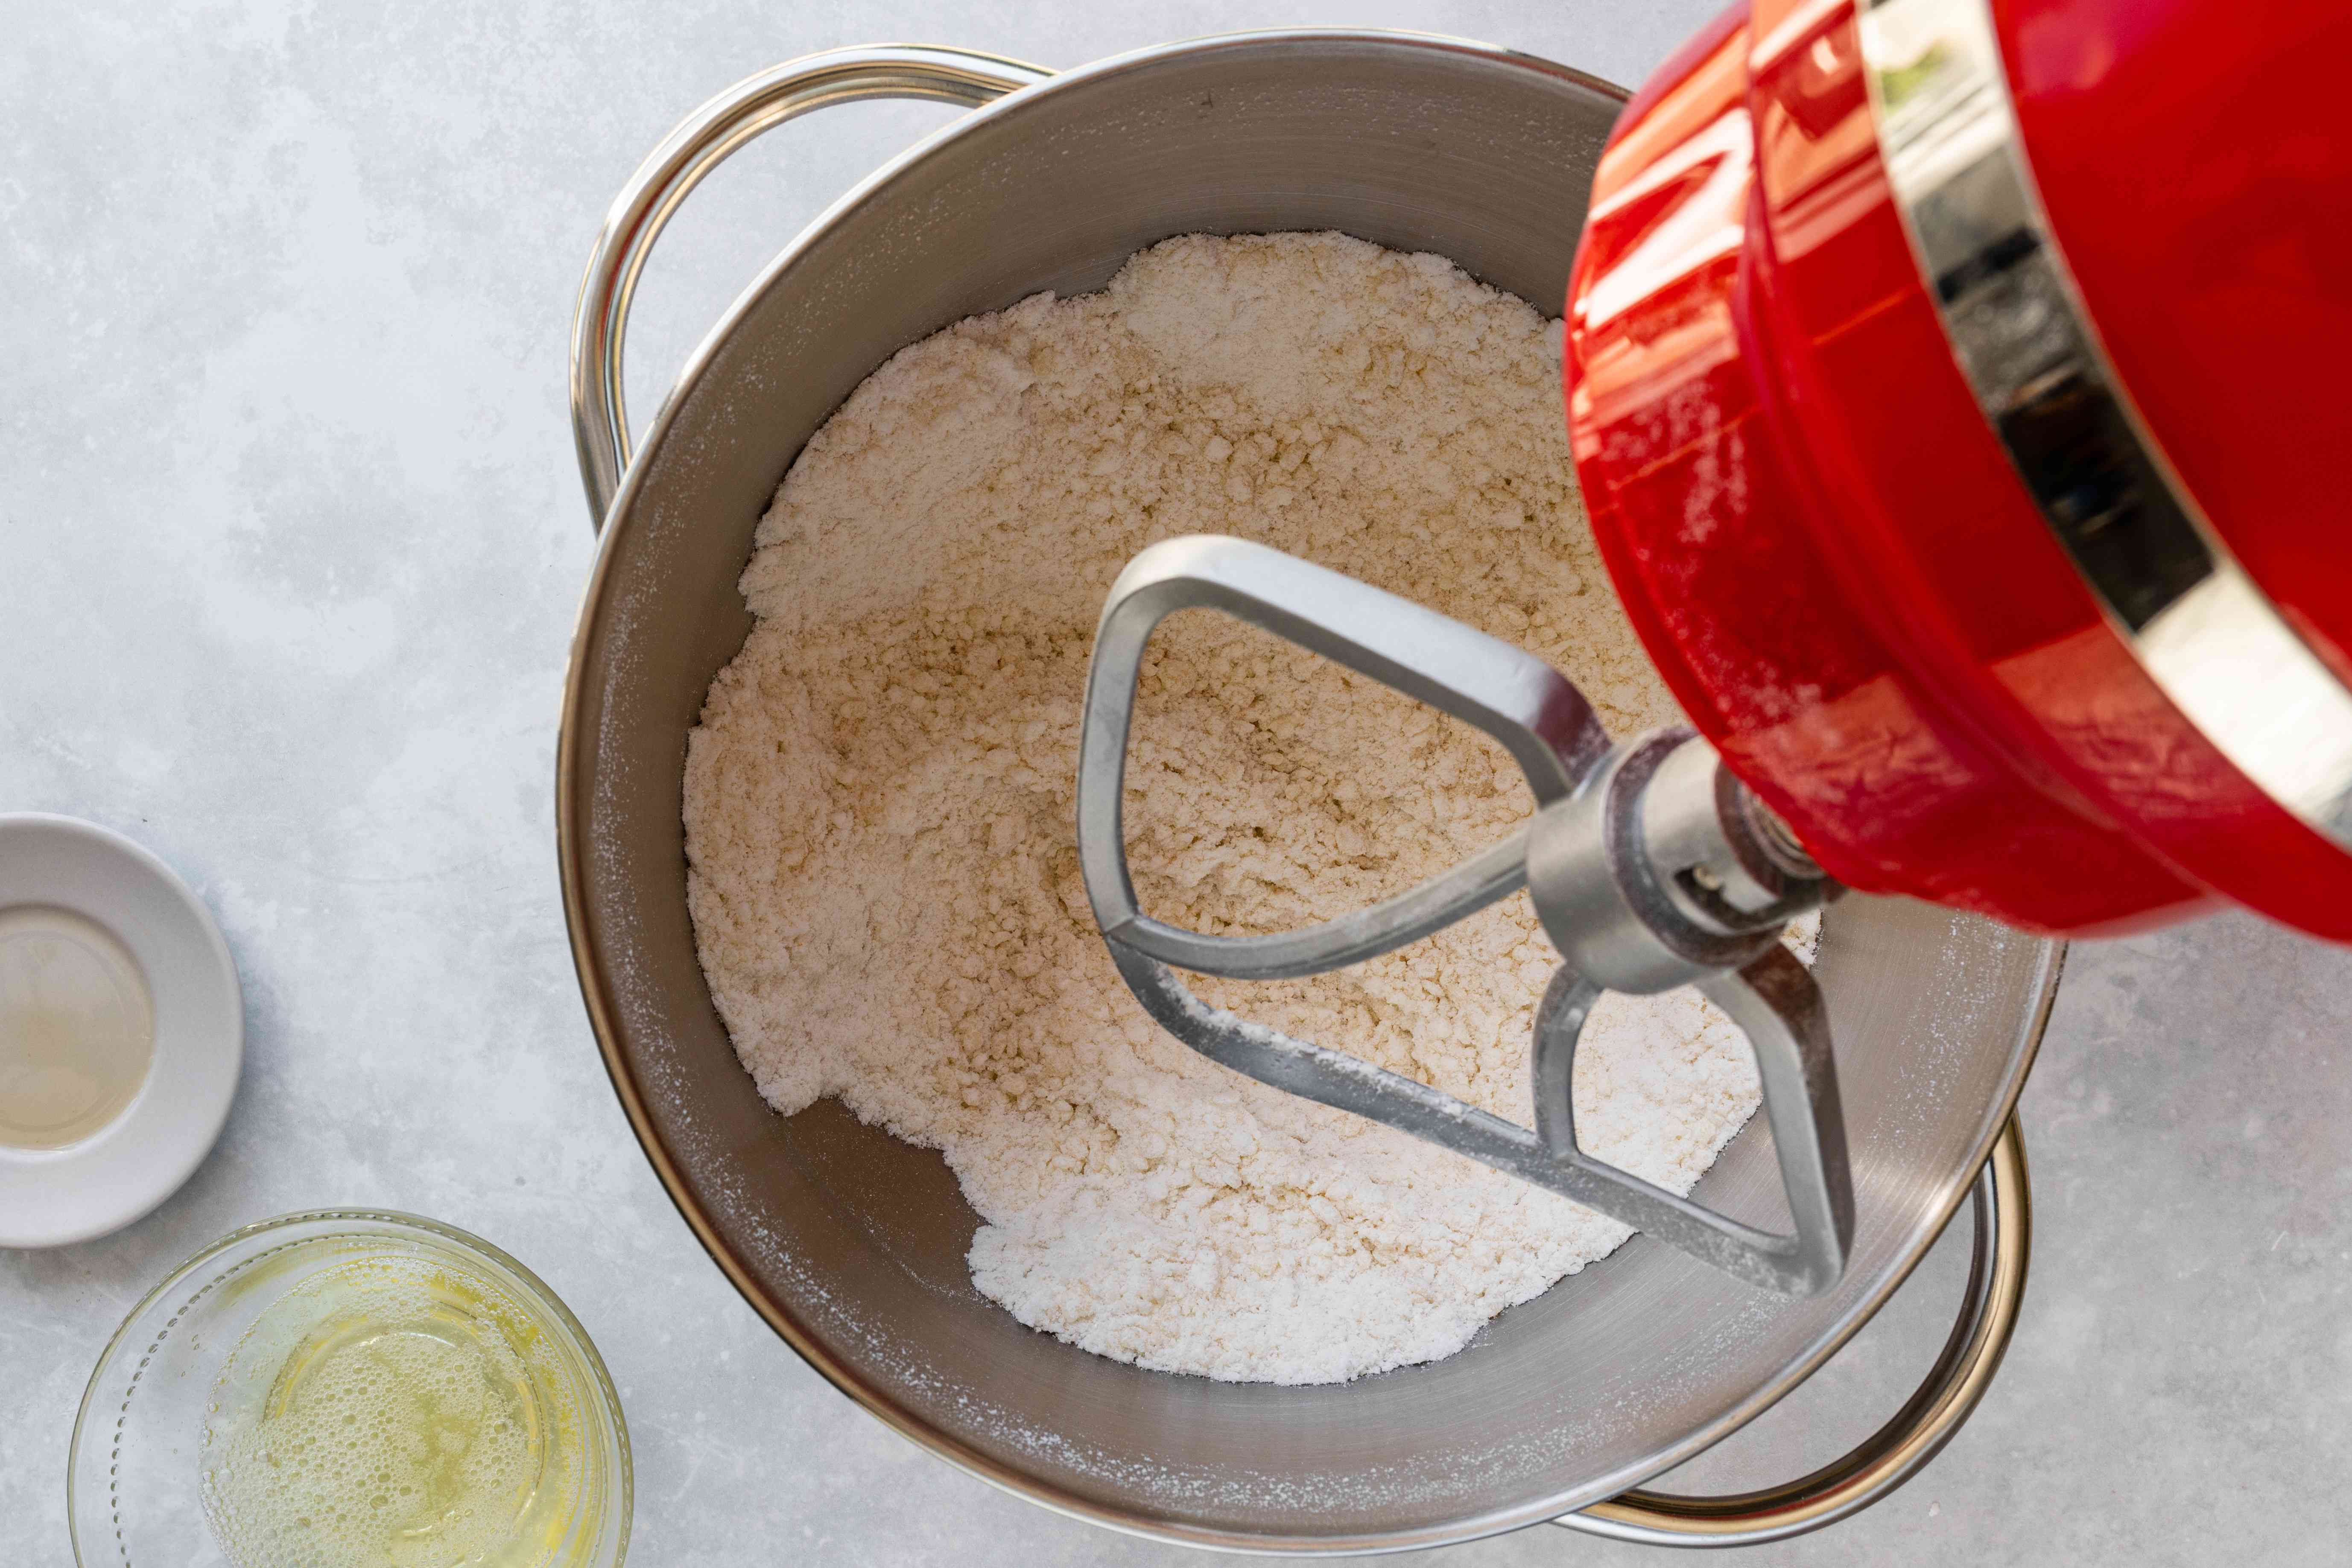 Pulse almond paste and sugar mixture